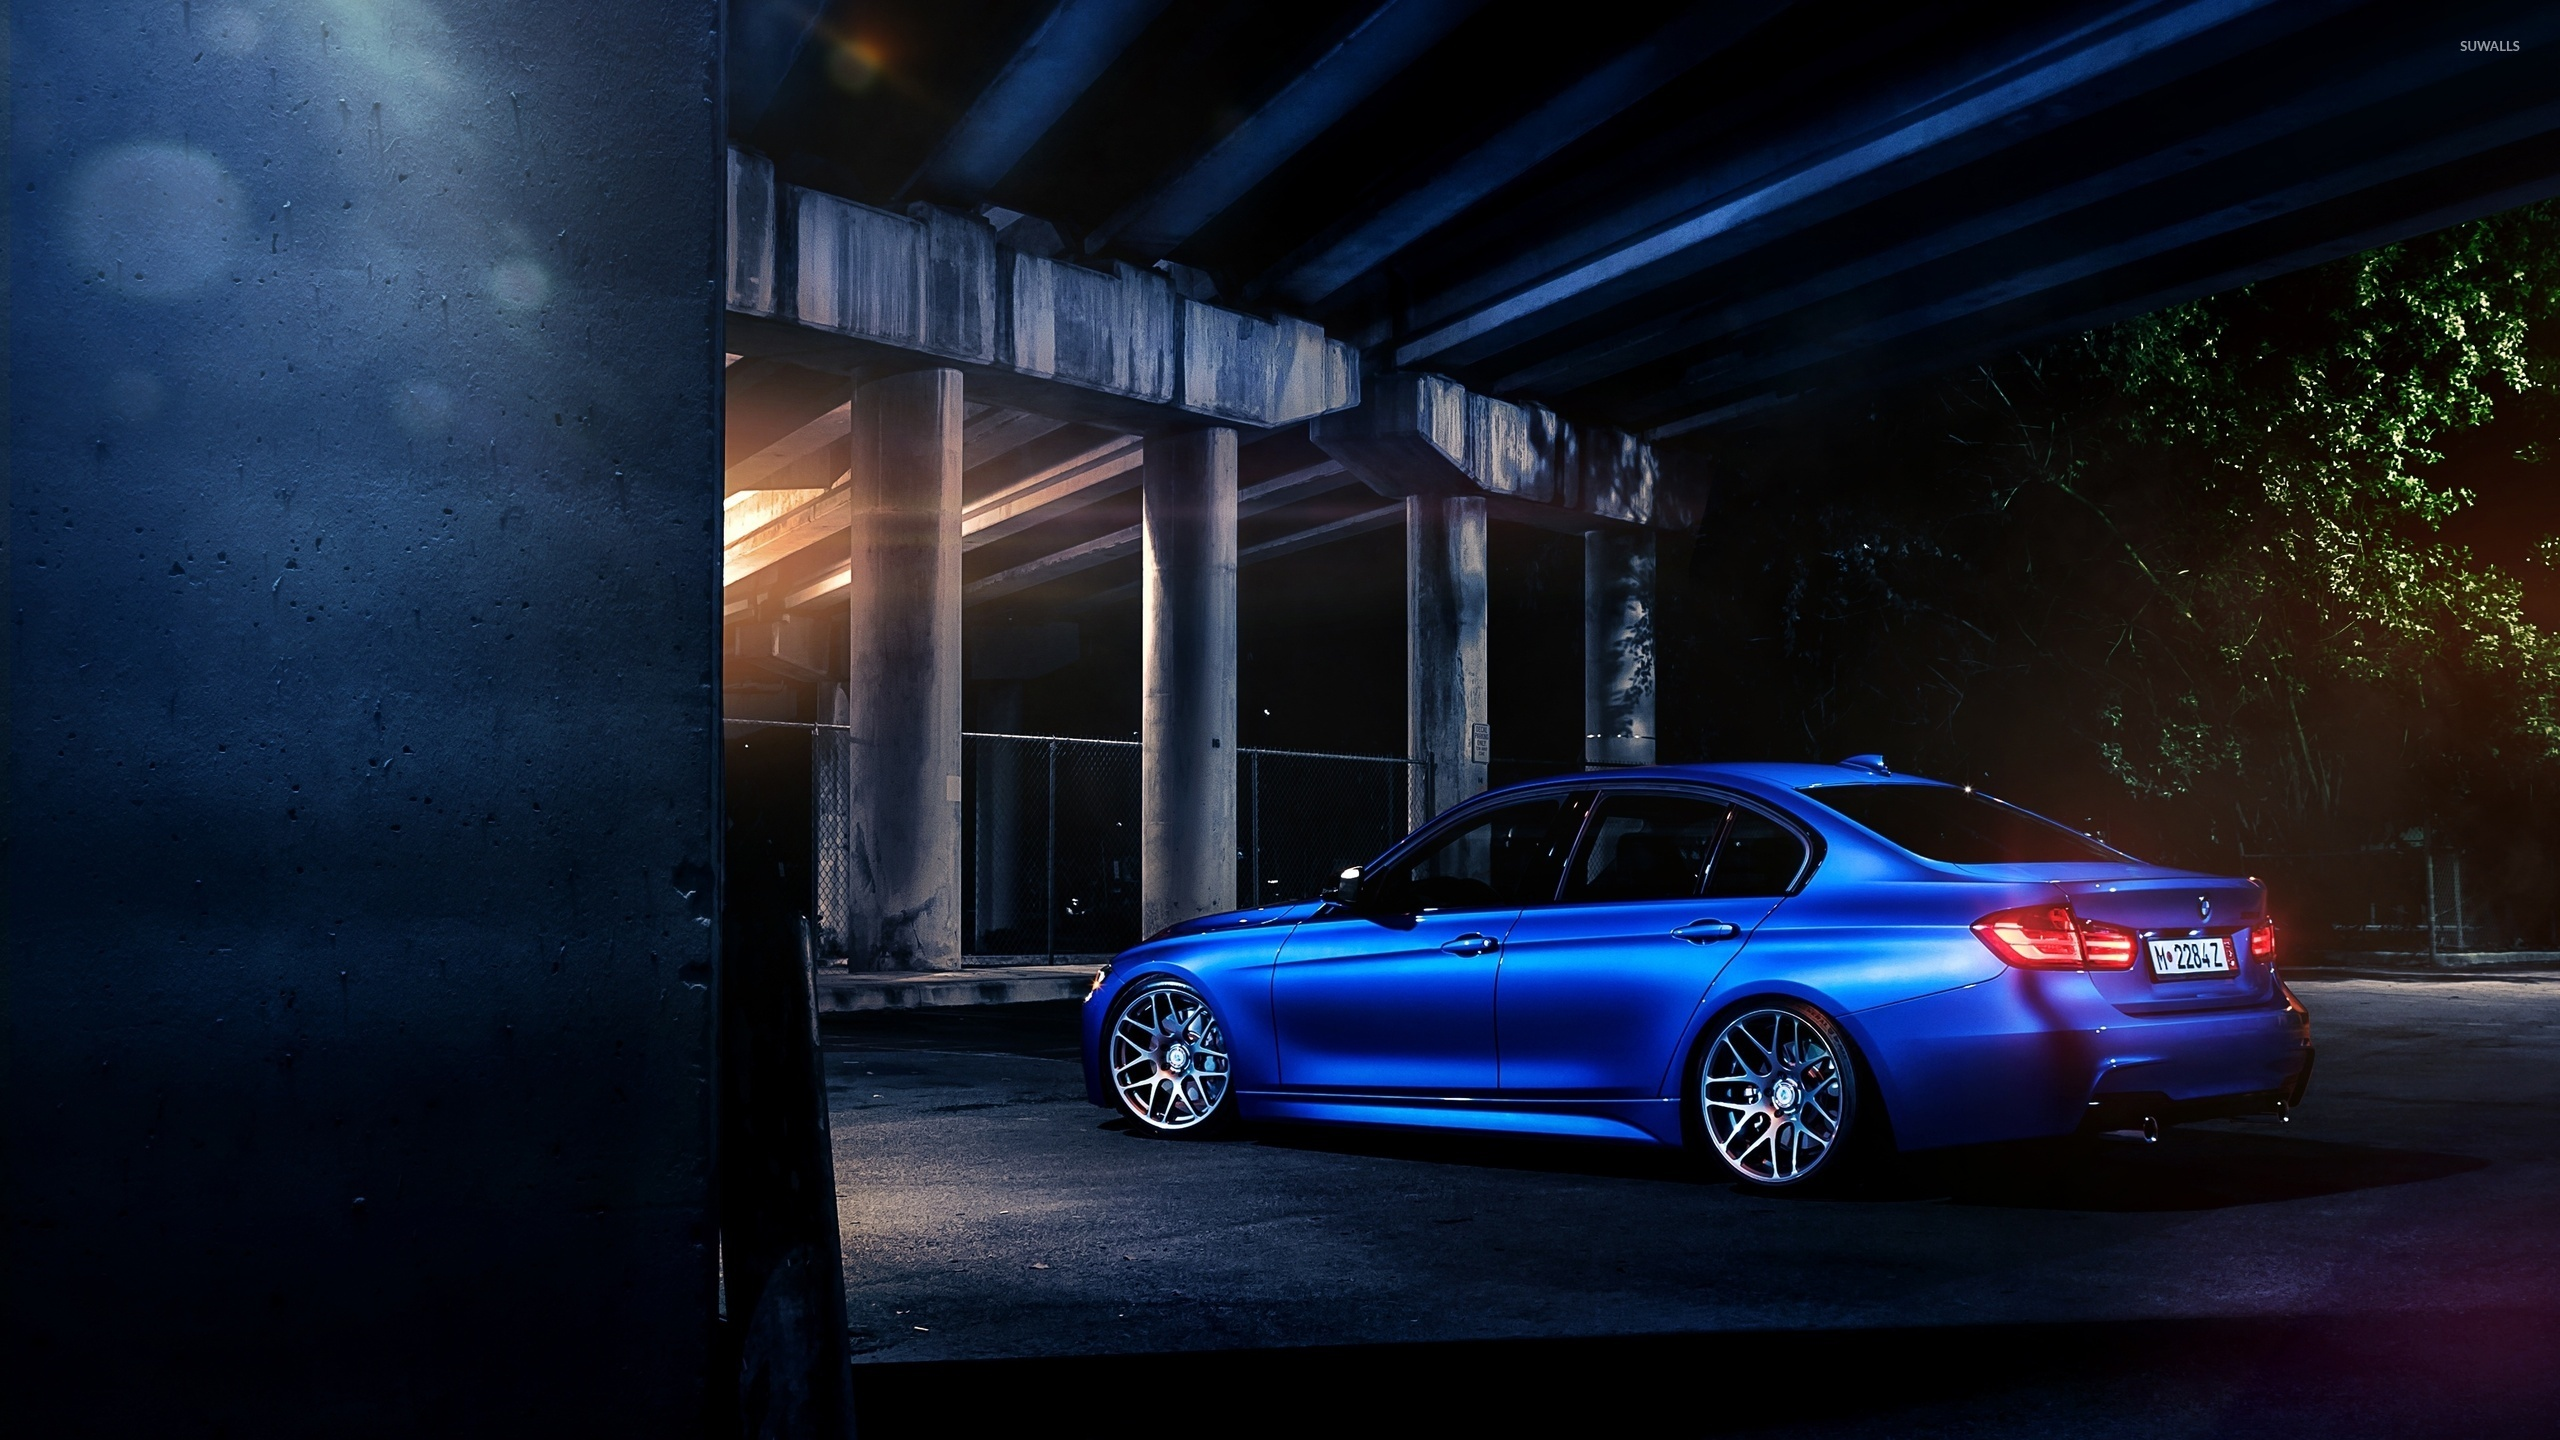 Bmw 3 Series 7 Wallpaper Car Wallpapers 48279